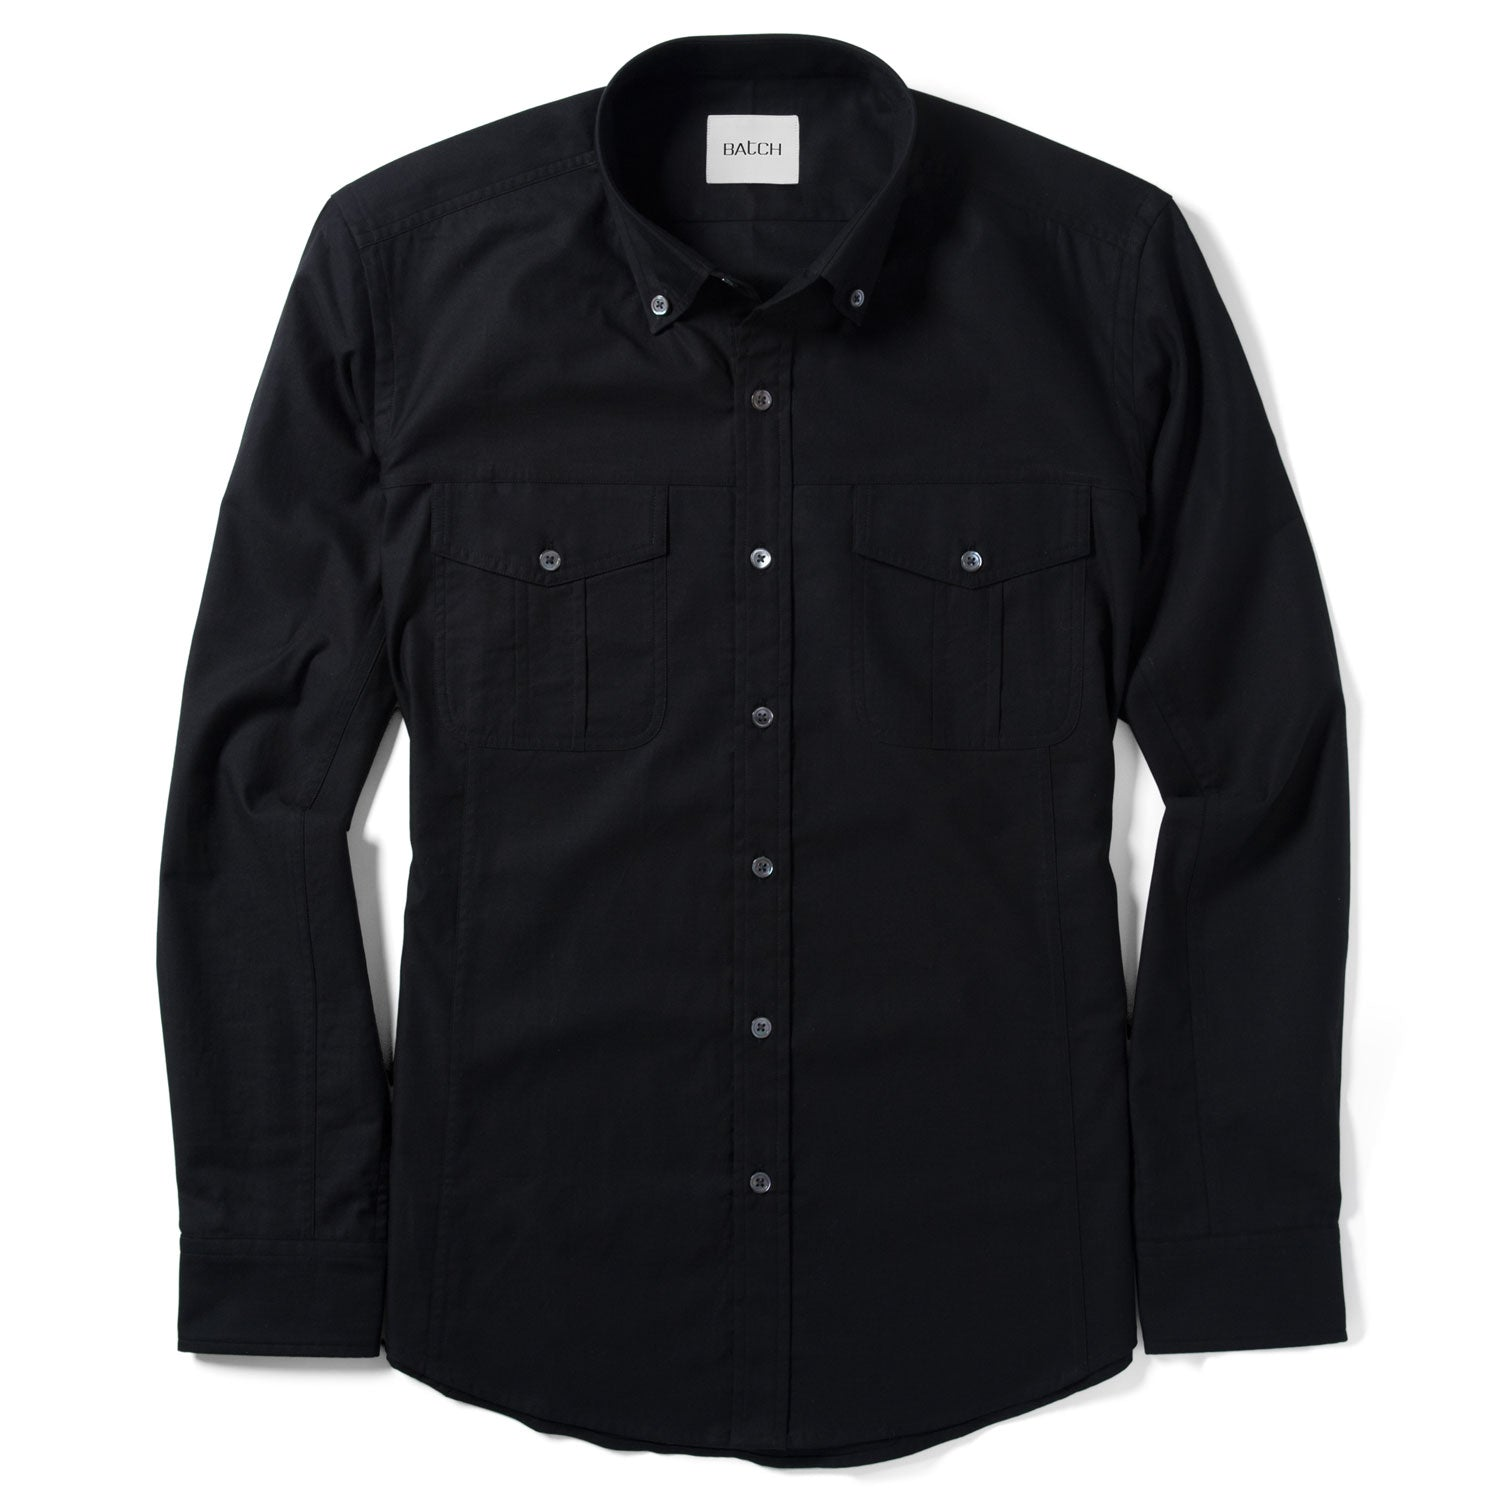 Editor Shirt – Jet Black Mercerized Cotton